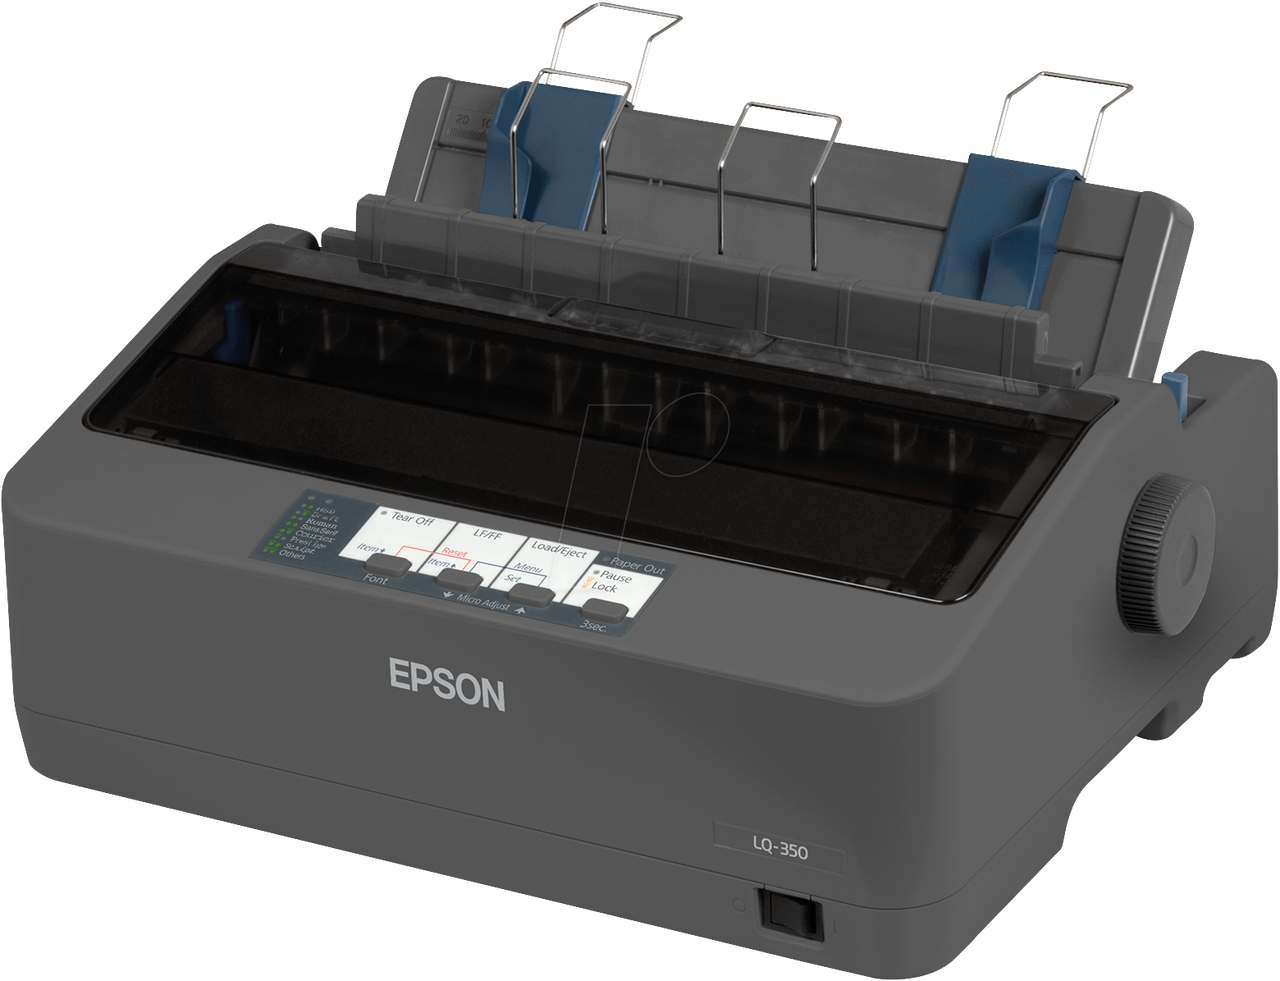 EPSON LQ-350  24-PIN DOT MATRIX PRINTER